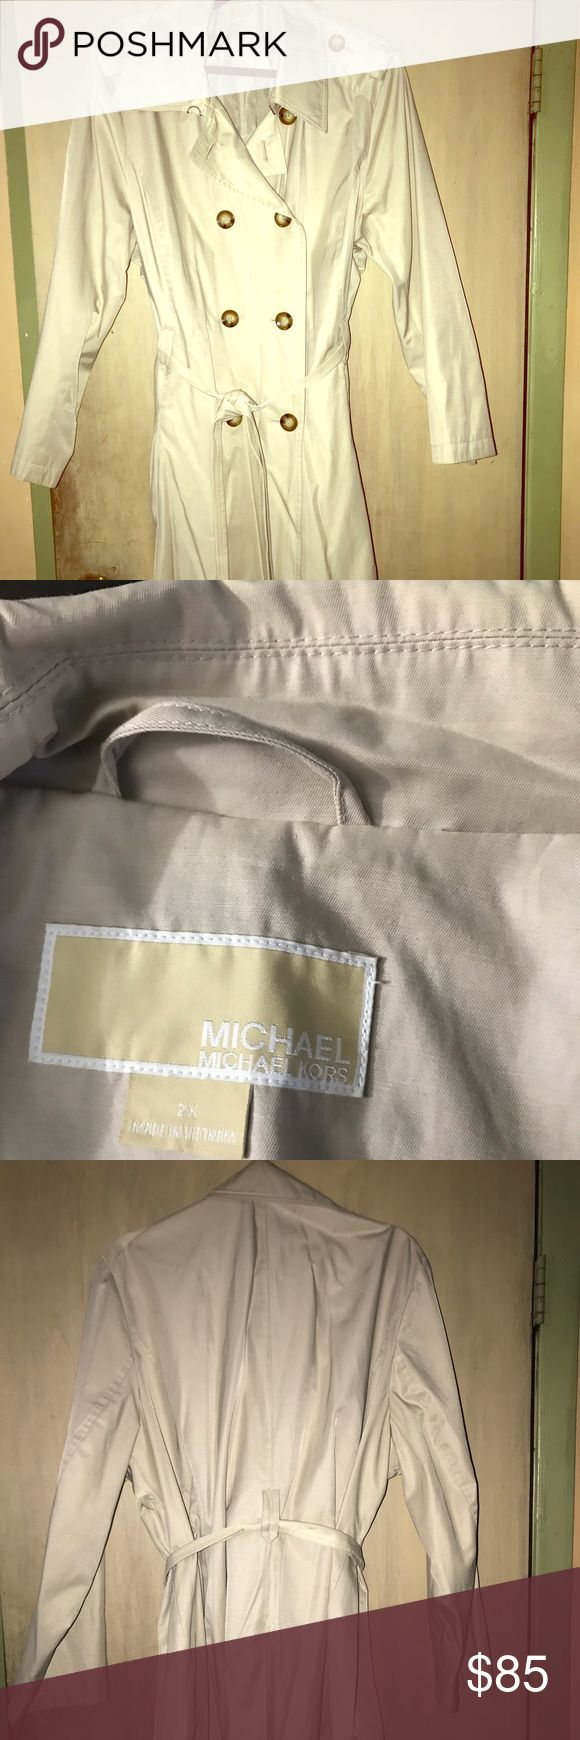 Michael Kors spring trench coat / rain coat Barely worn size 2x Michael Kors women's rain coat / trench coat. Great fit with belt. Looks amazing dressed up or casual. Small lipstick stain on left sleeve by wrist visible in pictures only flaw. Thanks for shopping my closet Michael Kors Jackets & Coats Trench Coats